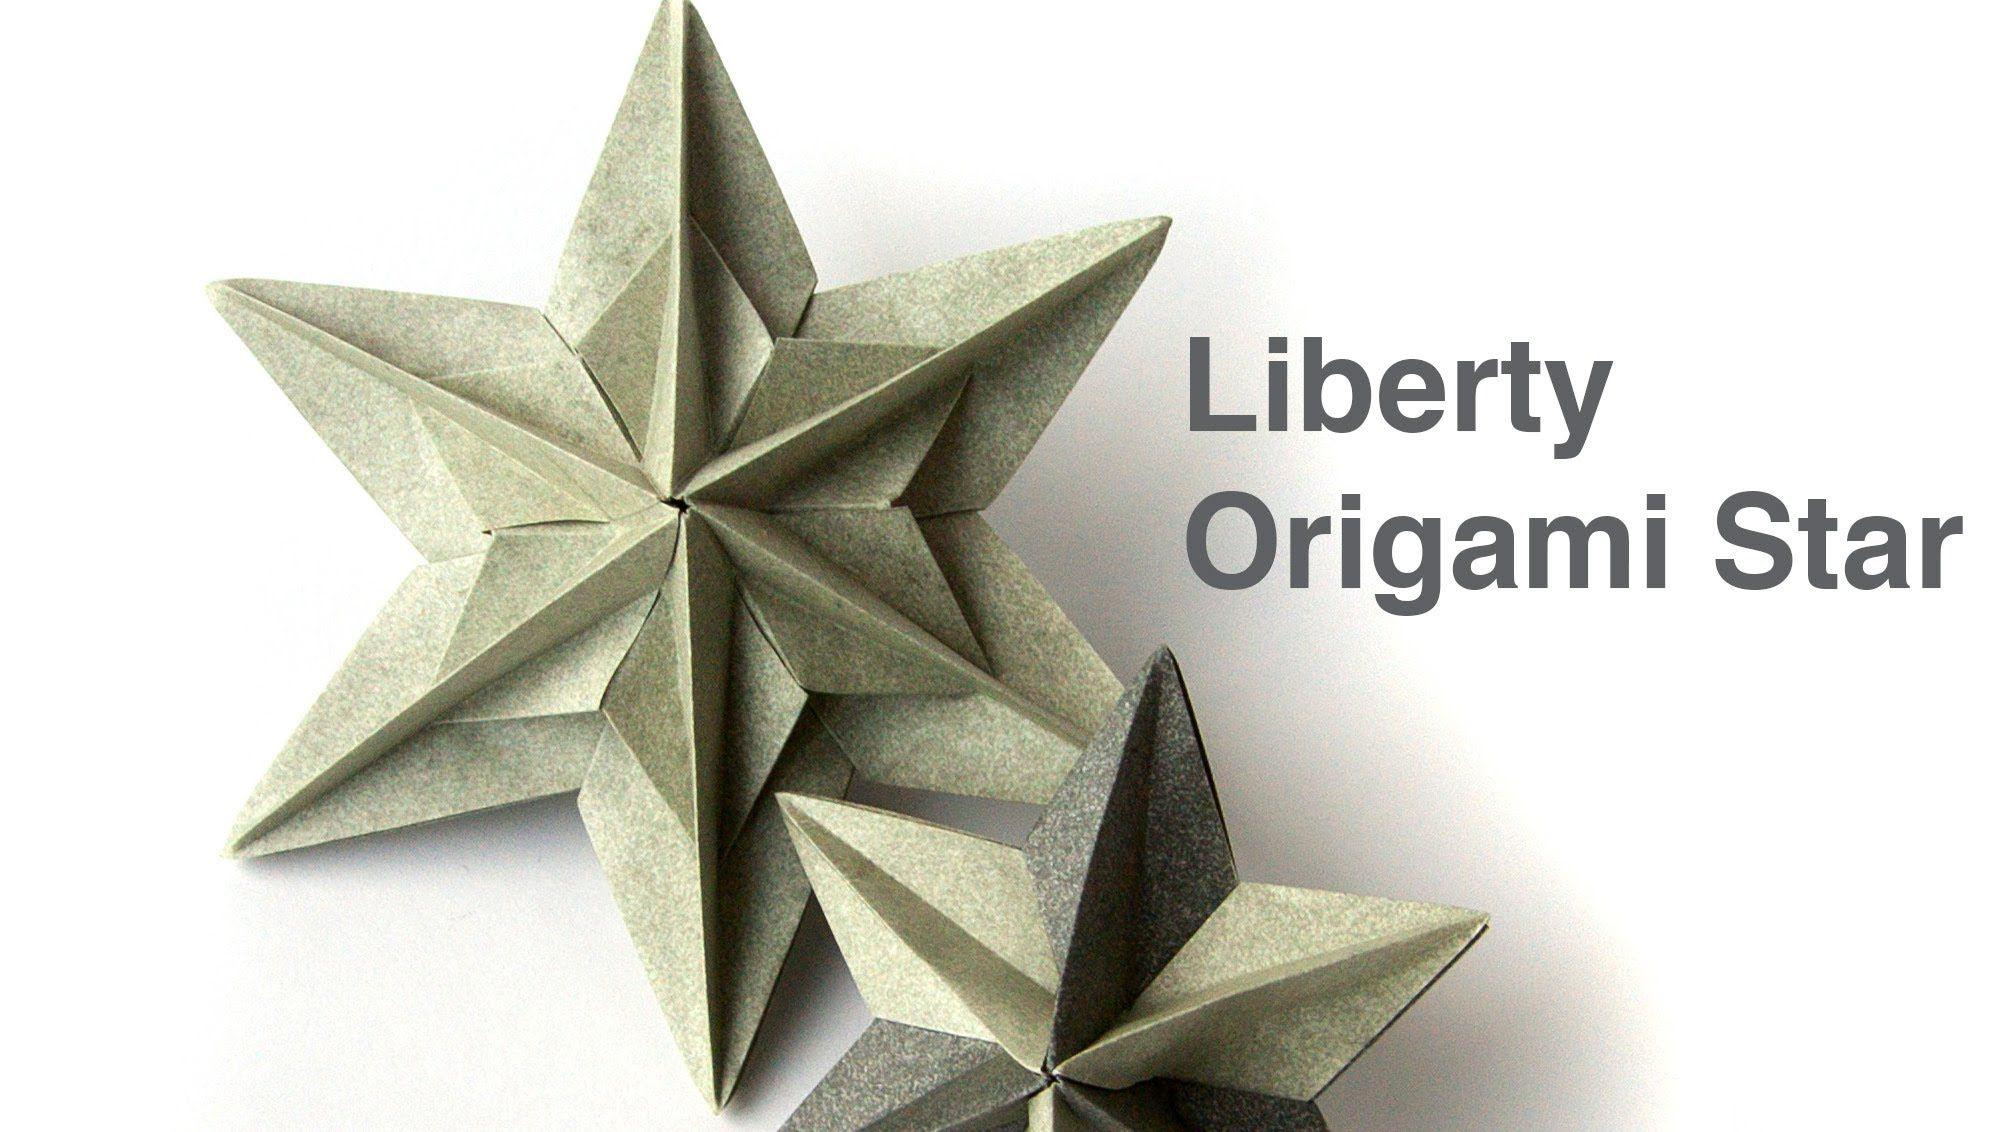 Tutorial how to make liberty modular origami star spectacular 3d tutorial how to make liberty modular origami star spectacular 3d origami star from 6 squares mightylinksfo